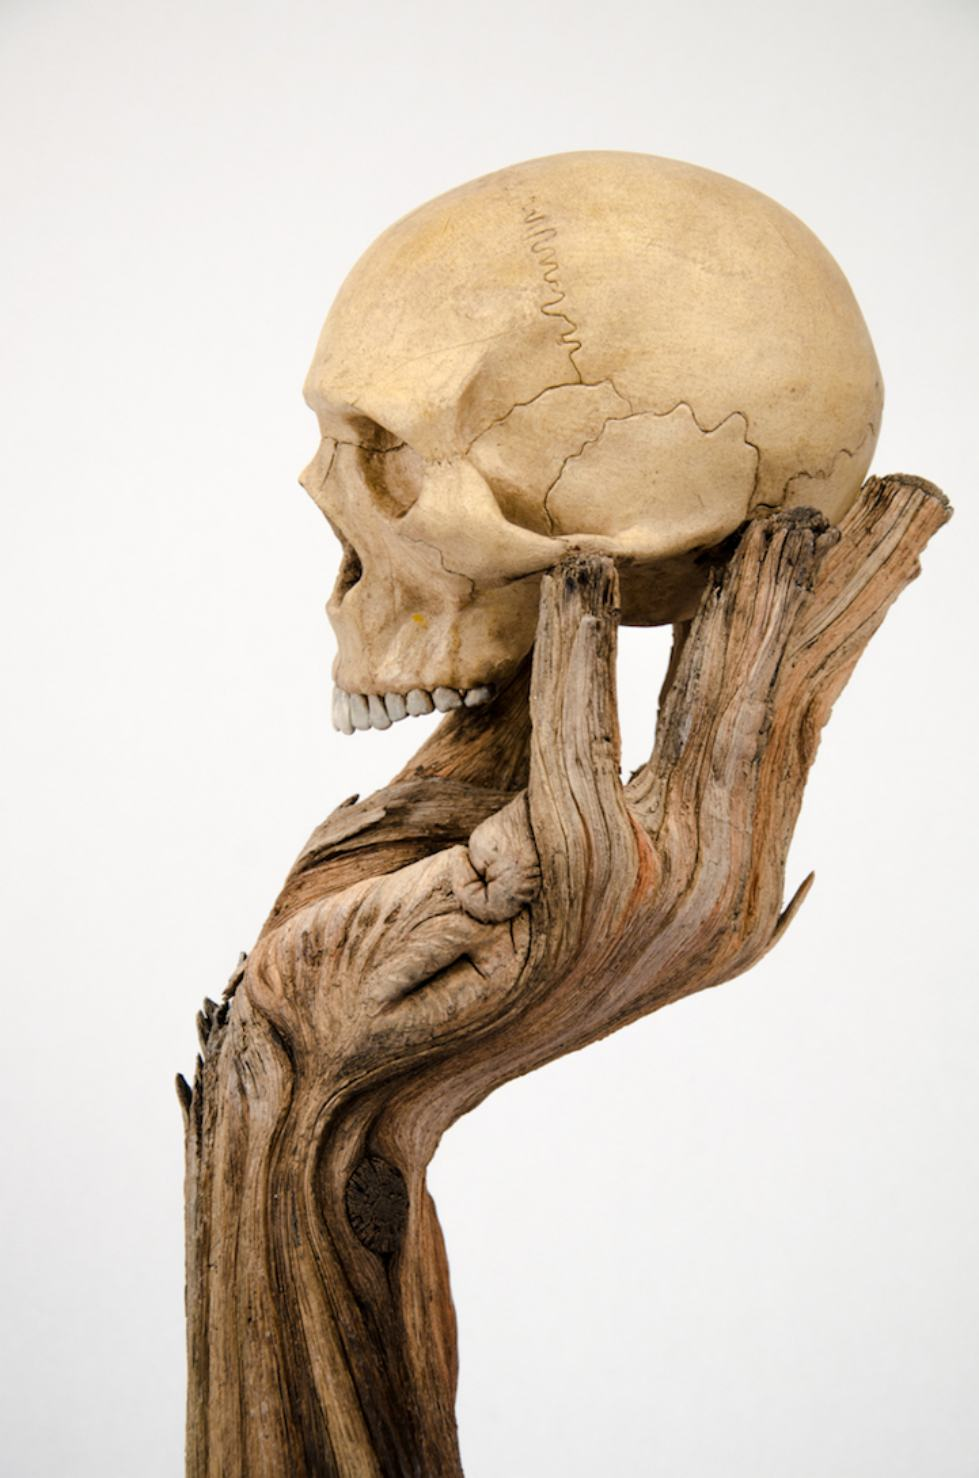 Christopher David White – Alas, Poor Yorick – Sculpture